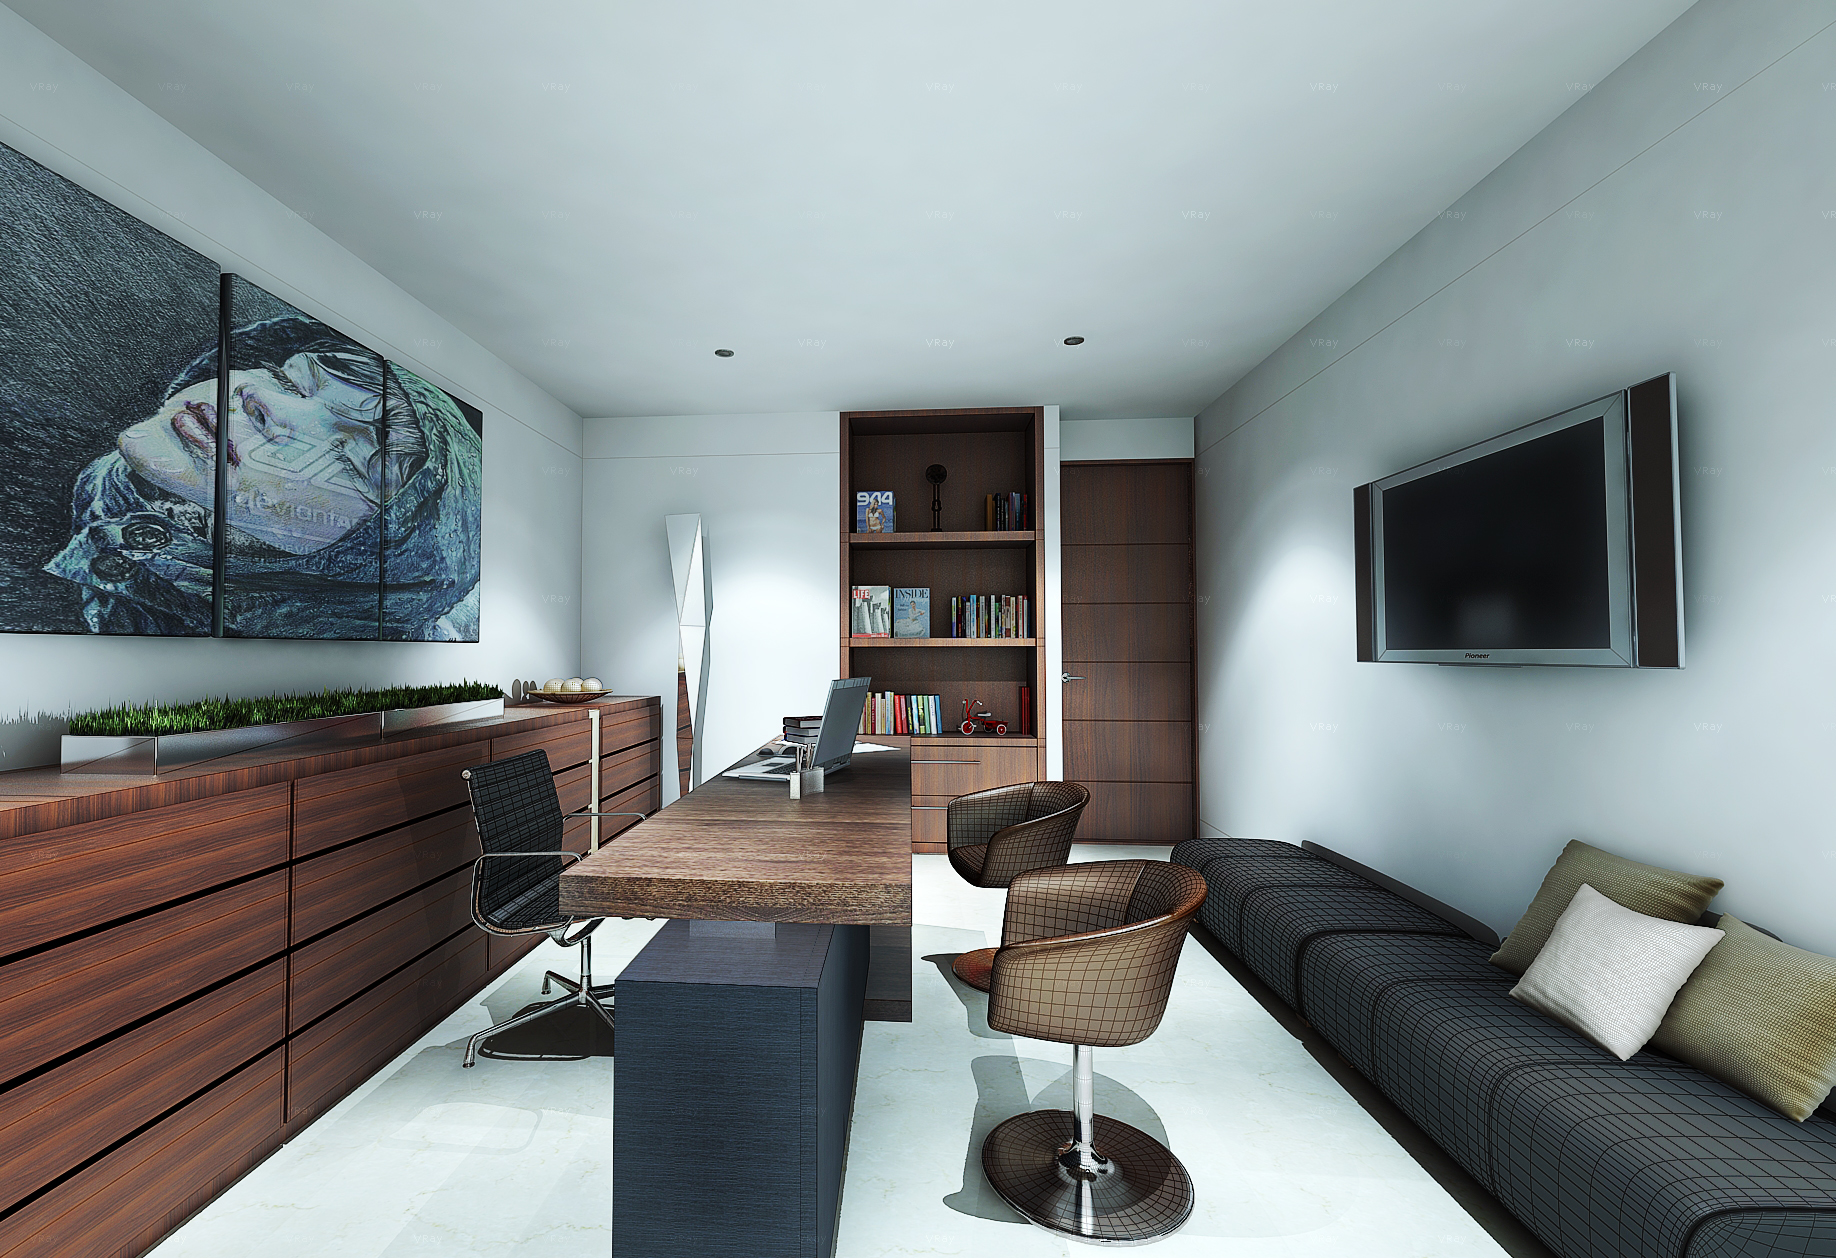 Best Interior Design Office Minimalist | rbservis.com